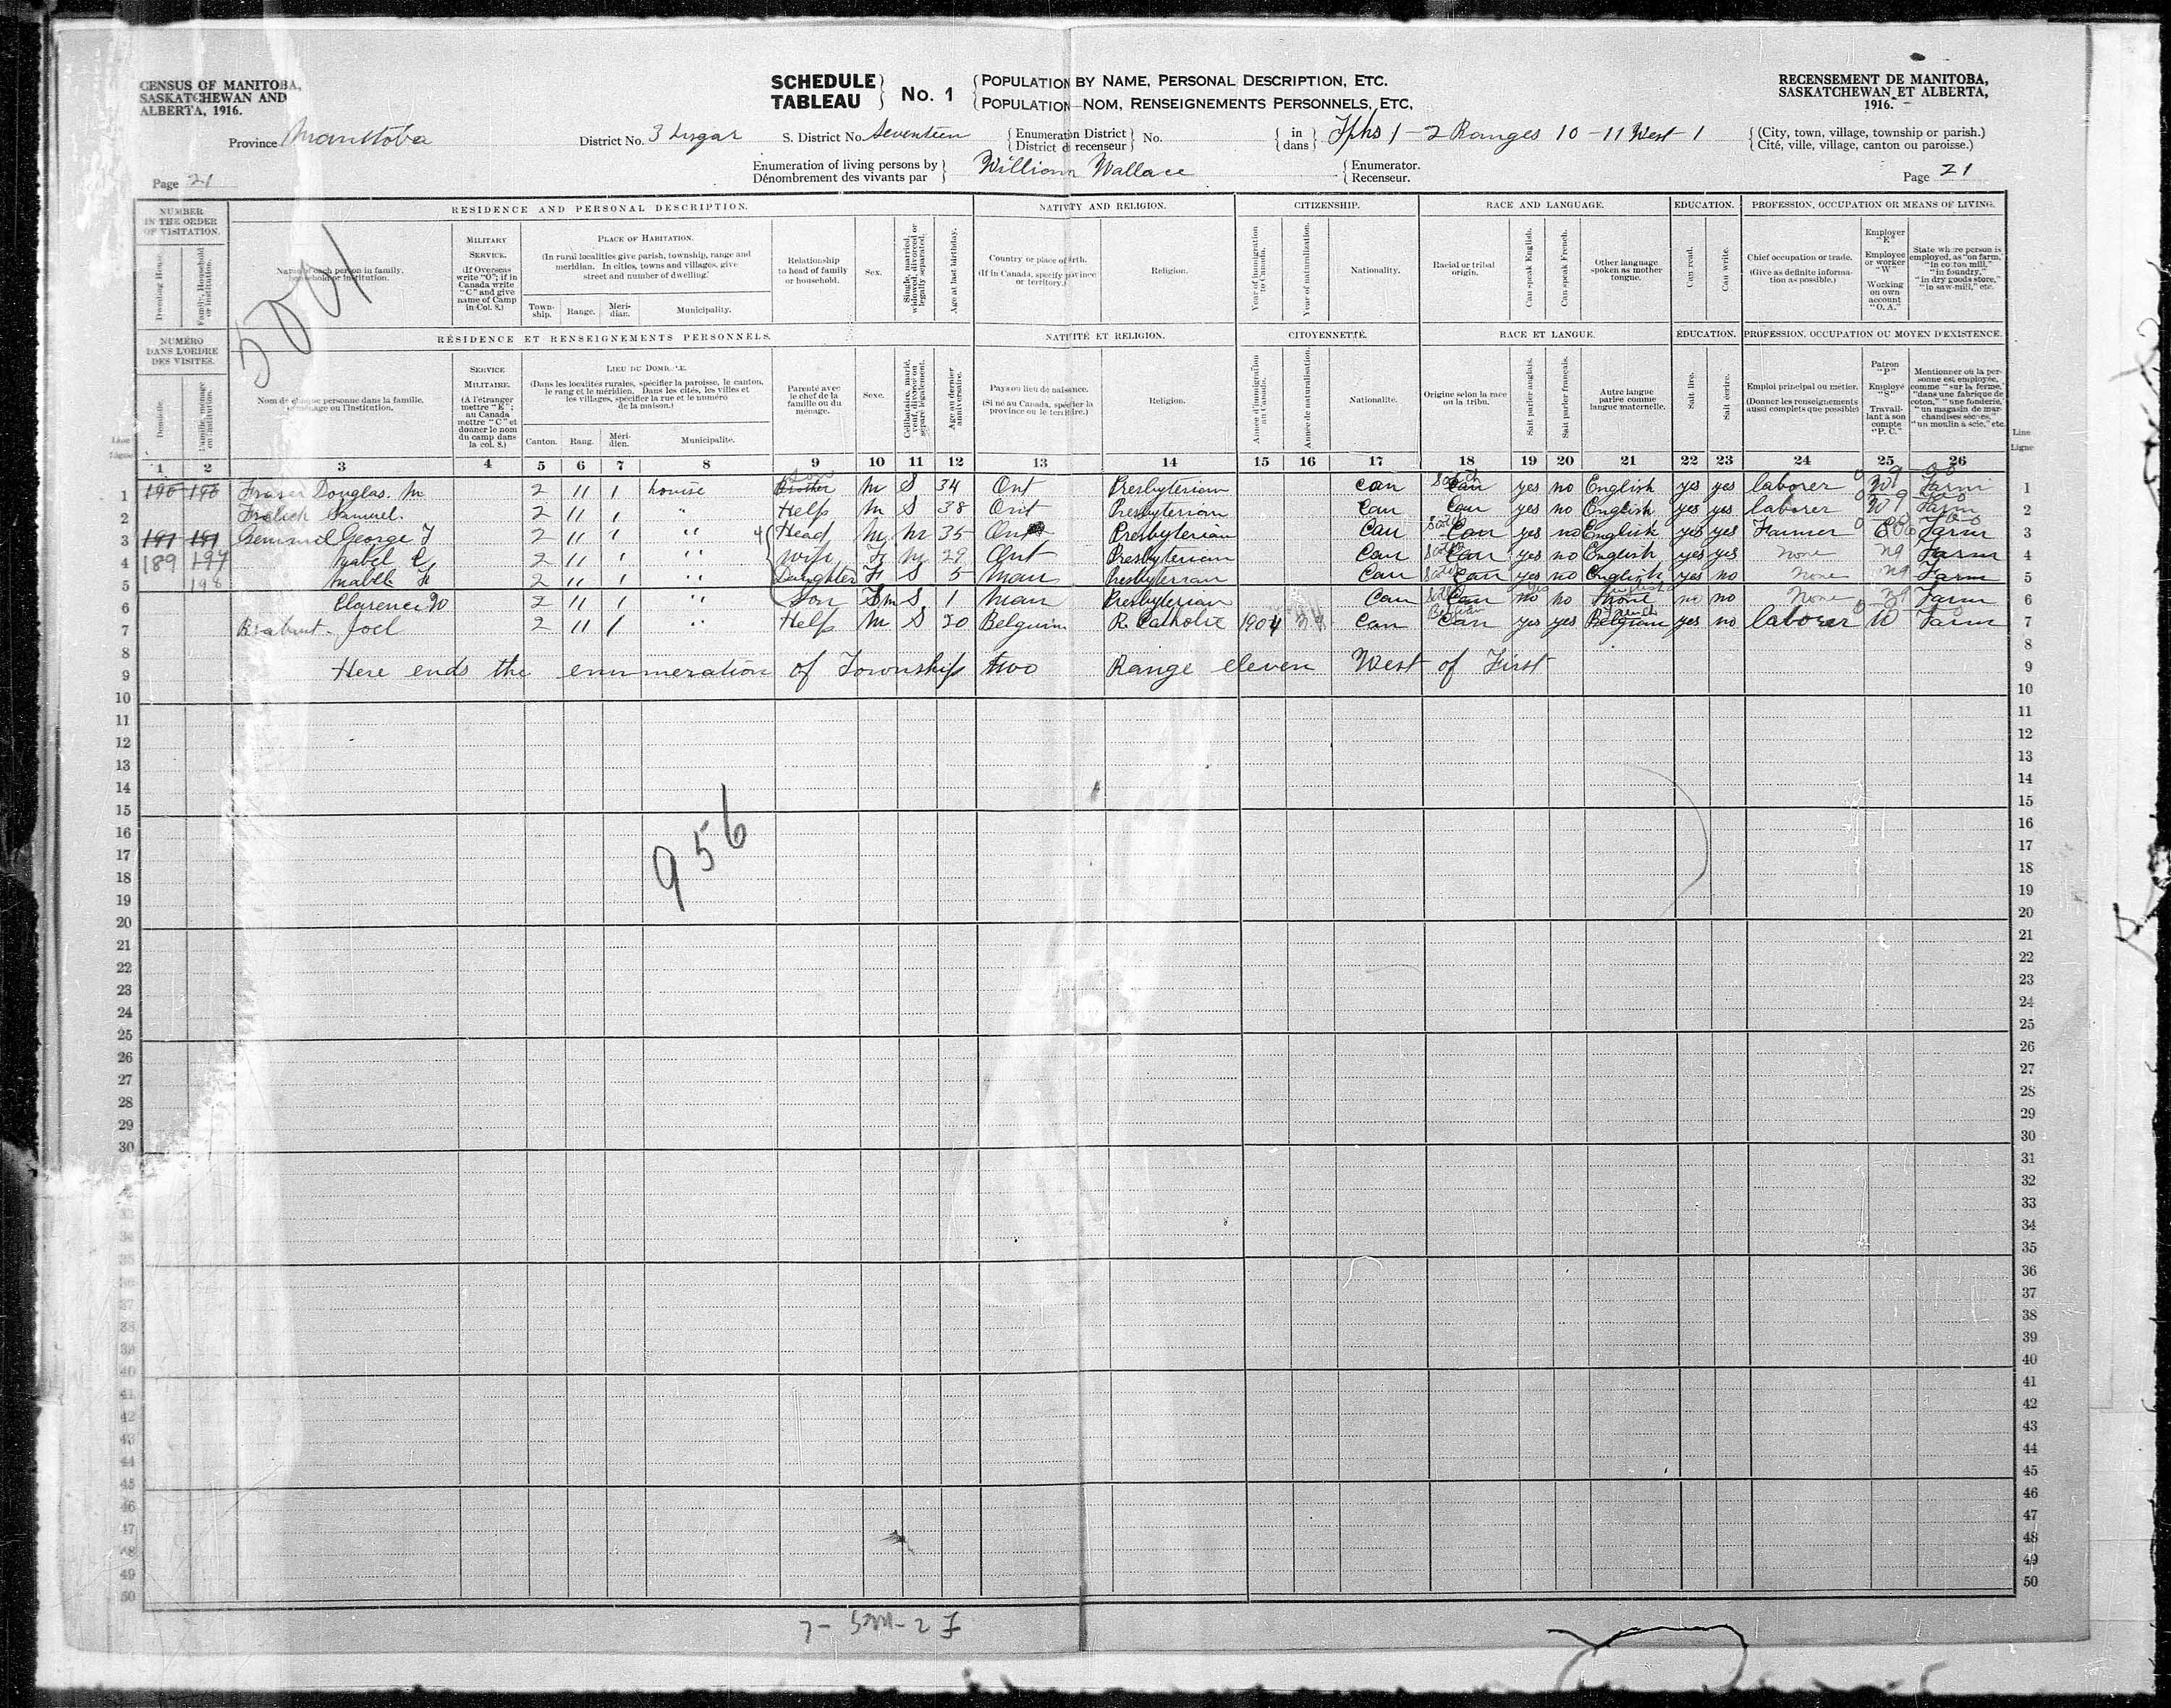 Title: Census of the Prairie Provinces, 1916 - Mikan Number: 3800575 - Microform: t-21926